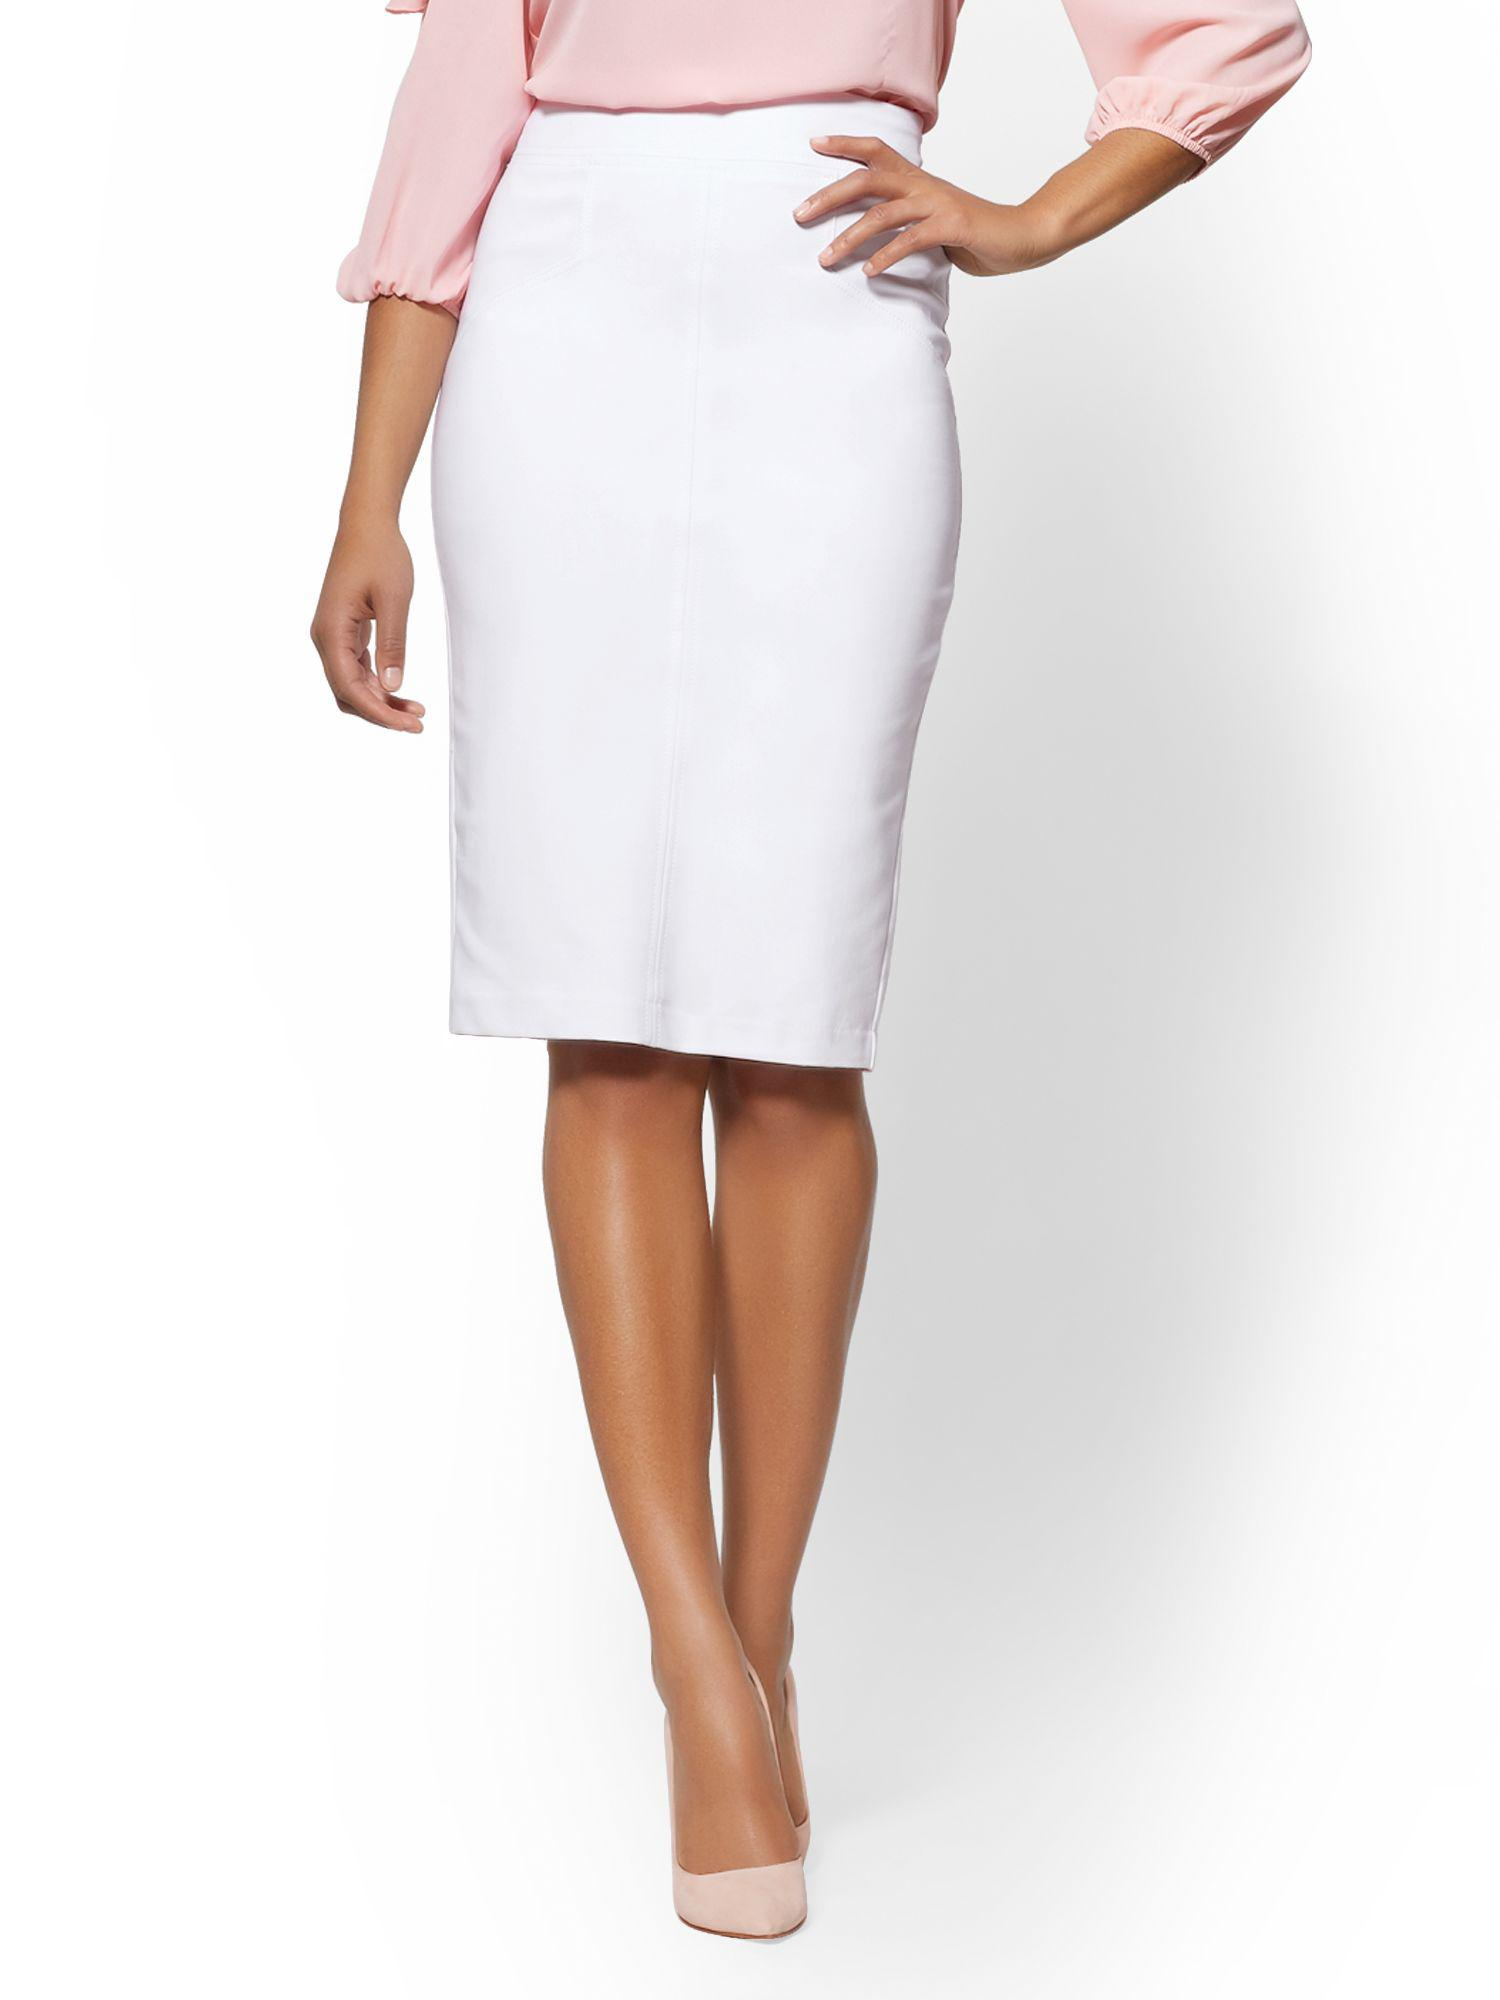 0df642a31 Gallery. Previously sold at: New York & Company · Women's Pencil Skirts